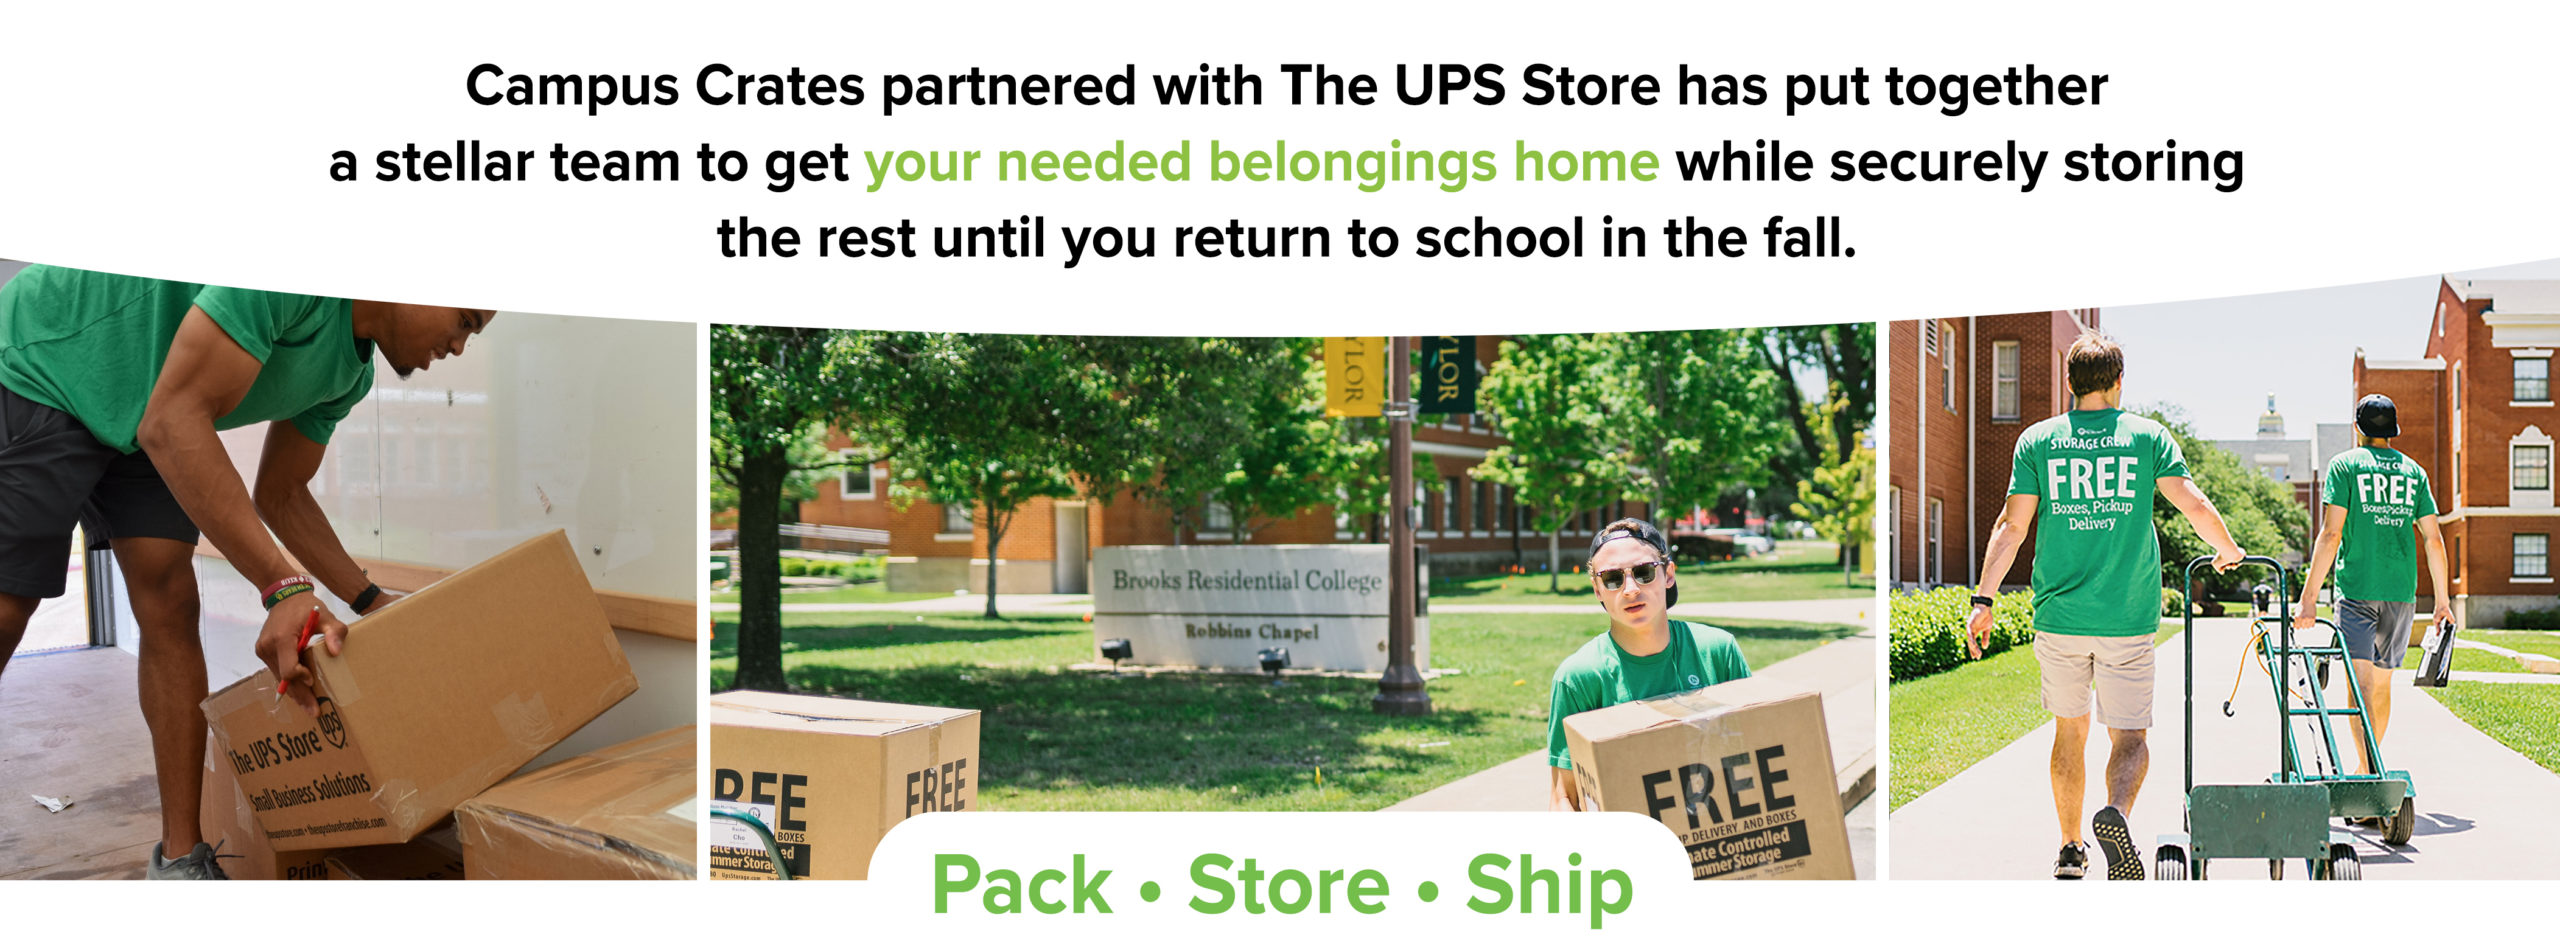 Campus Crated Partnered with the UPS Storage